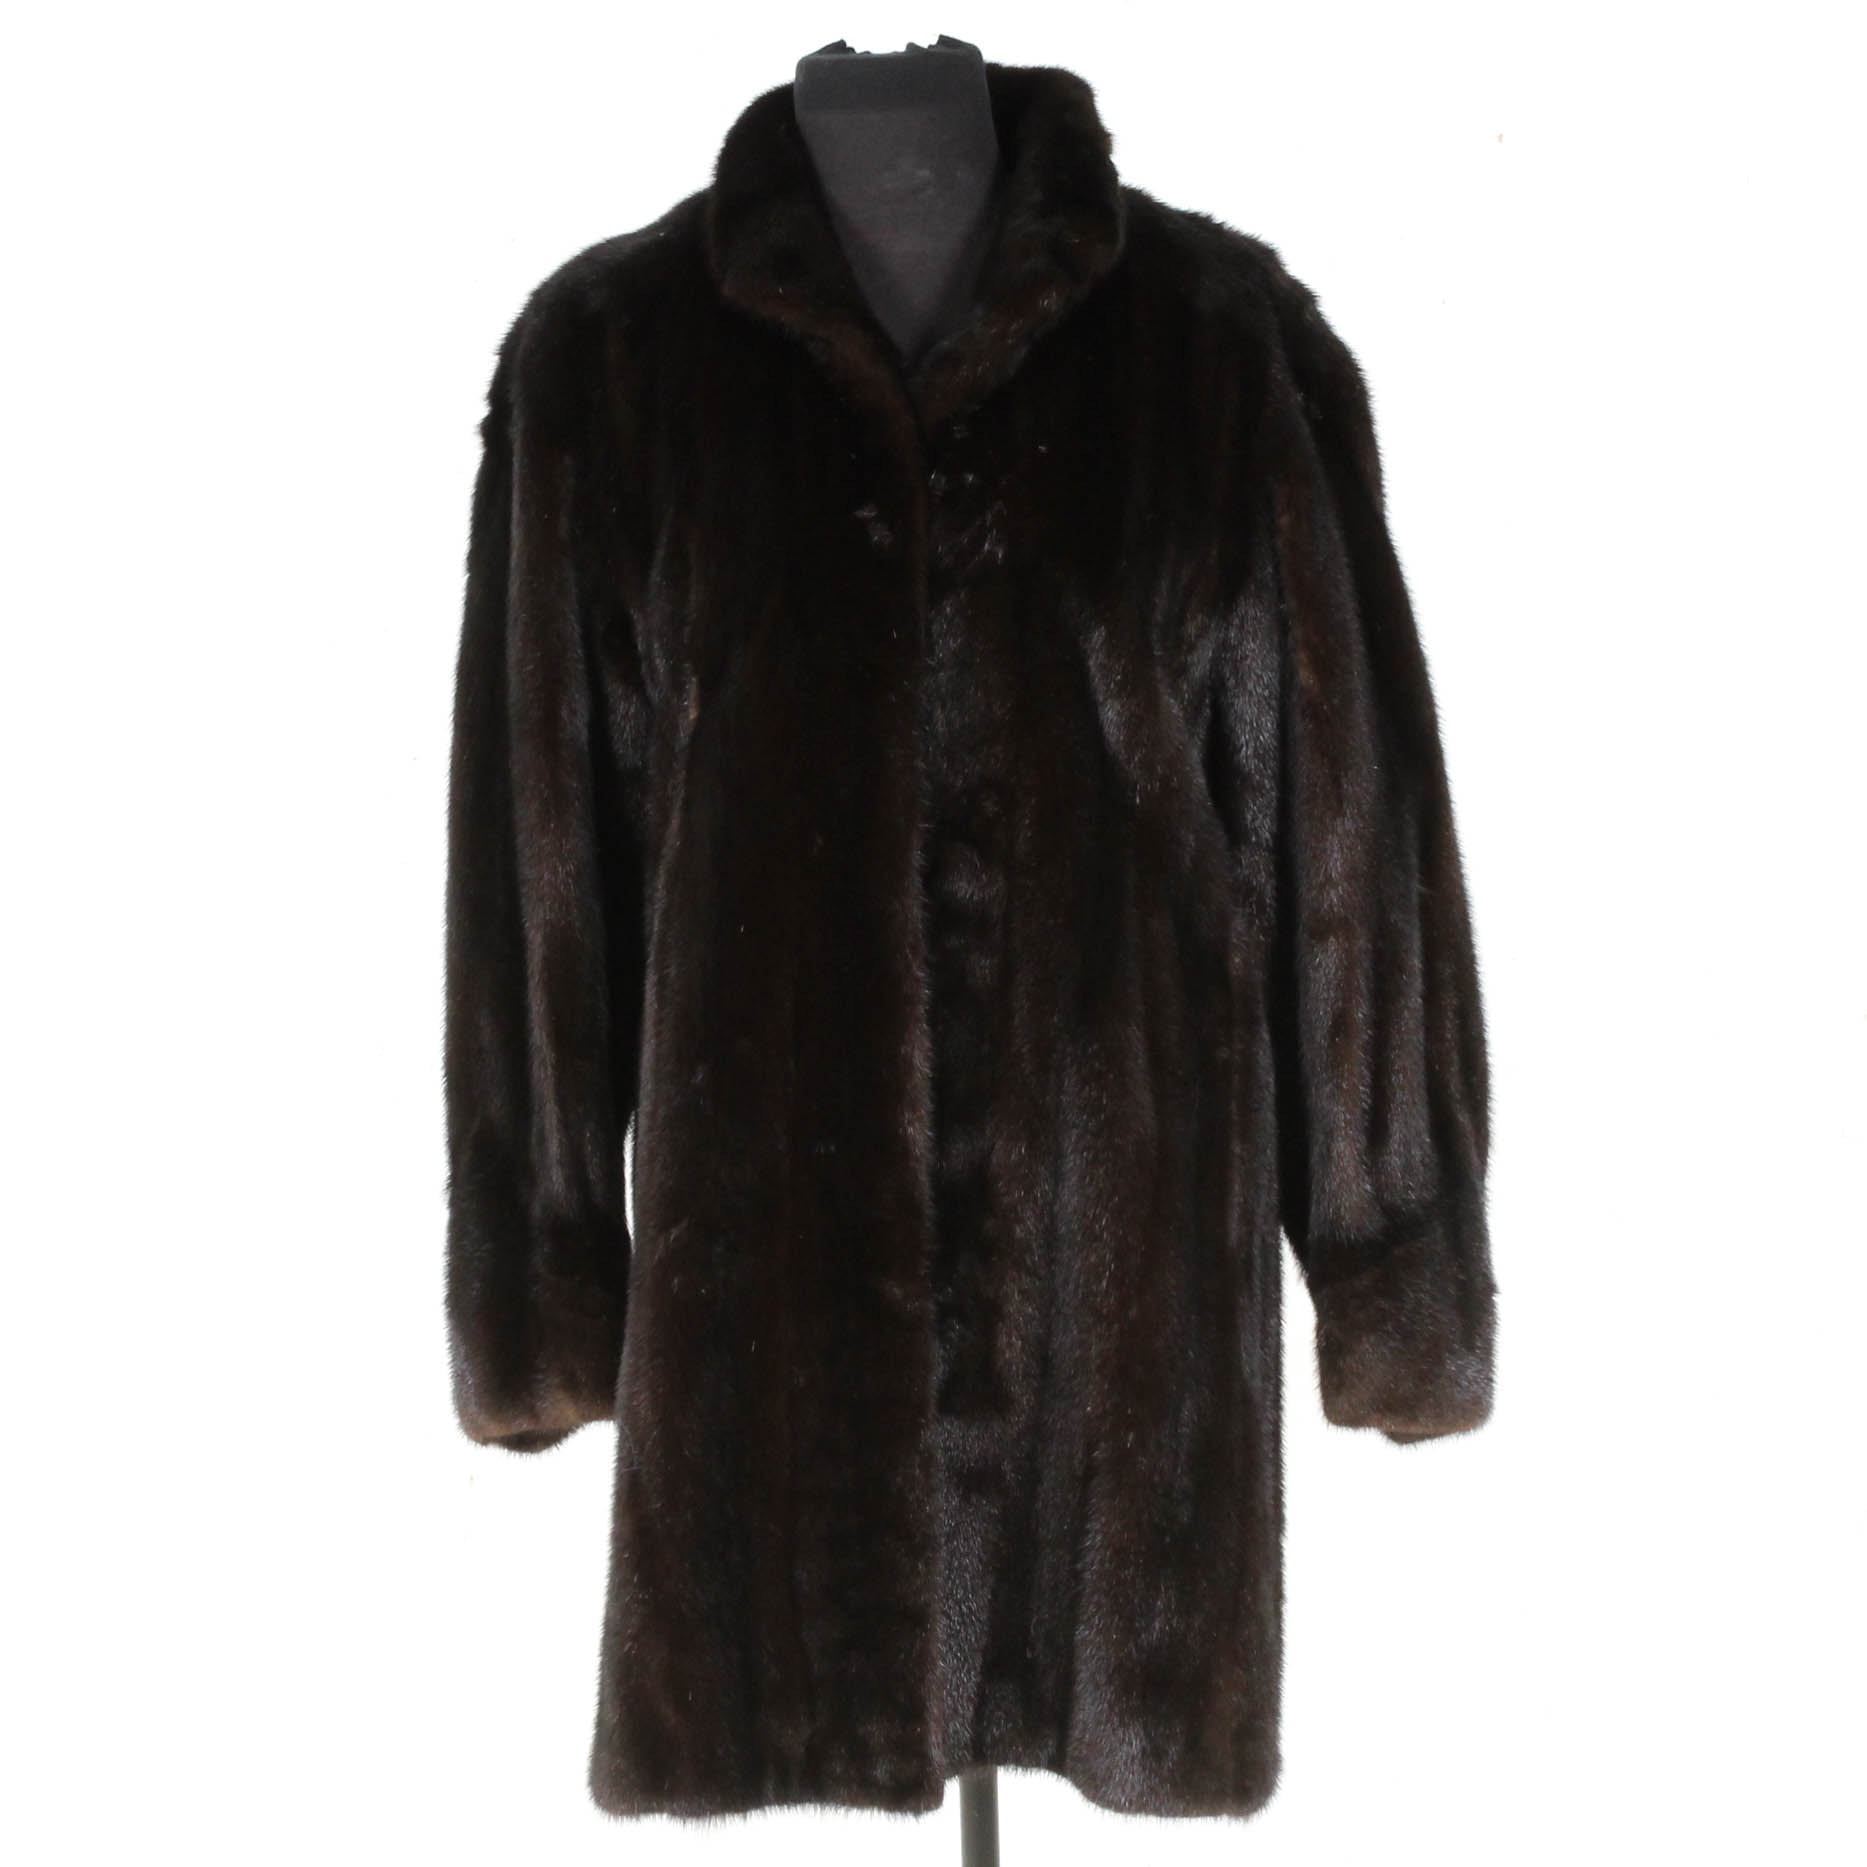 Koslow's Mink Fur Three-Quarter Length Coat